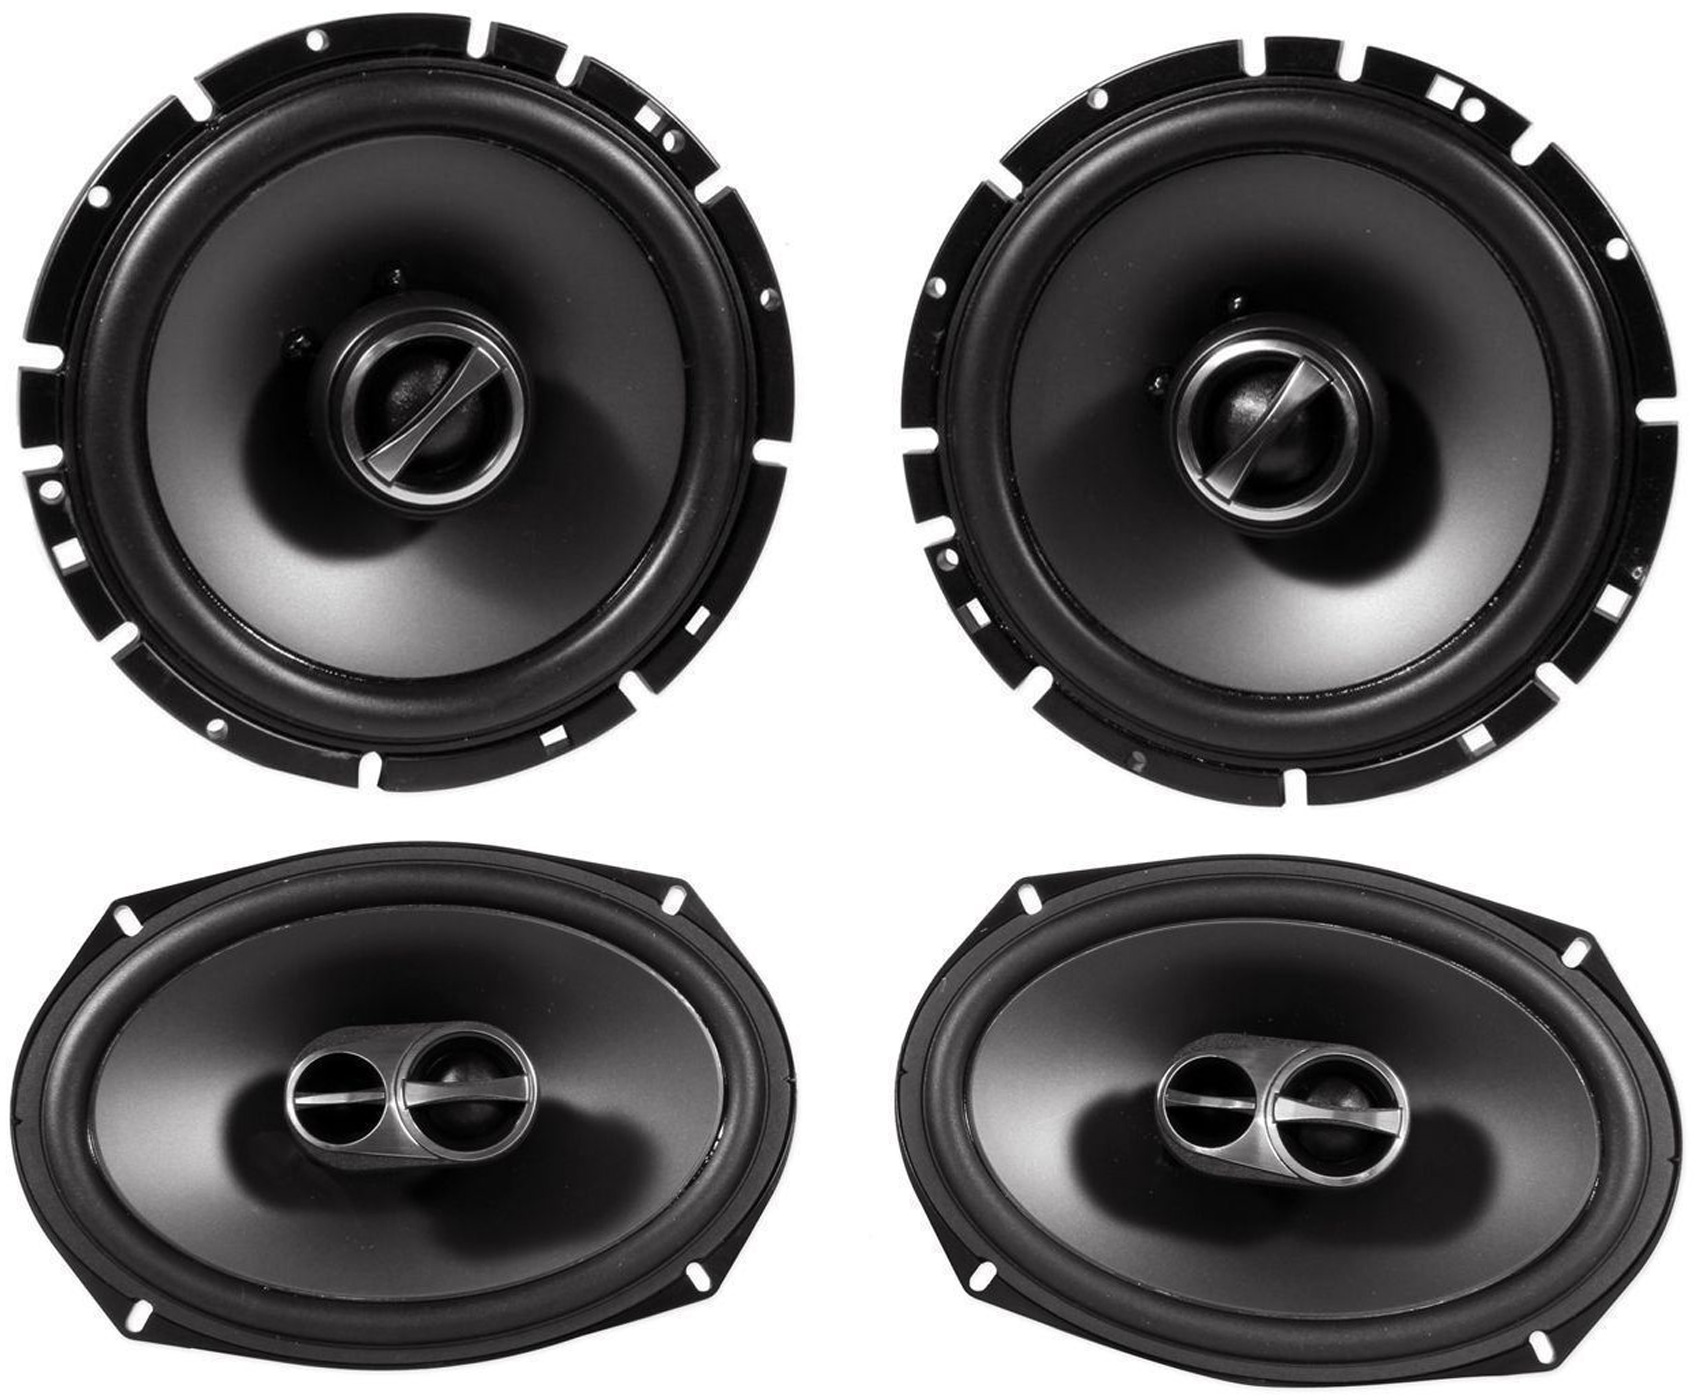 1999-2004 Jeep Grand Cherokee Front + Rear Alpine Factory Speaker Replacement by Alpine